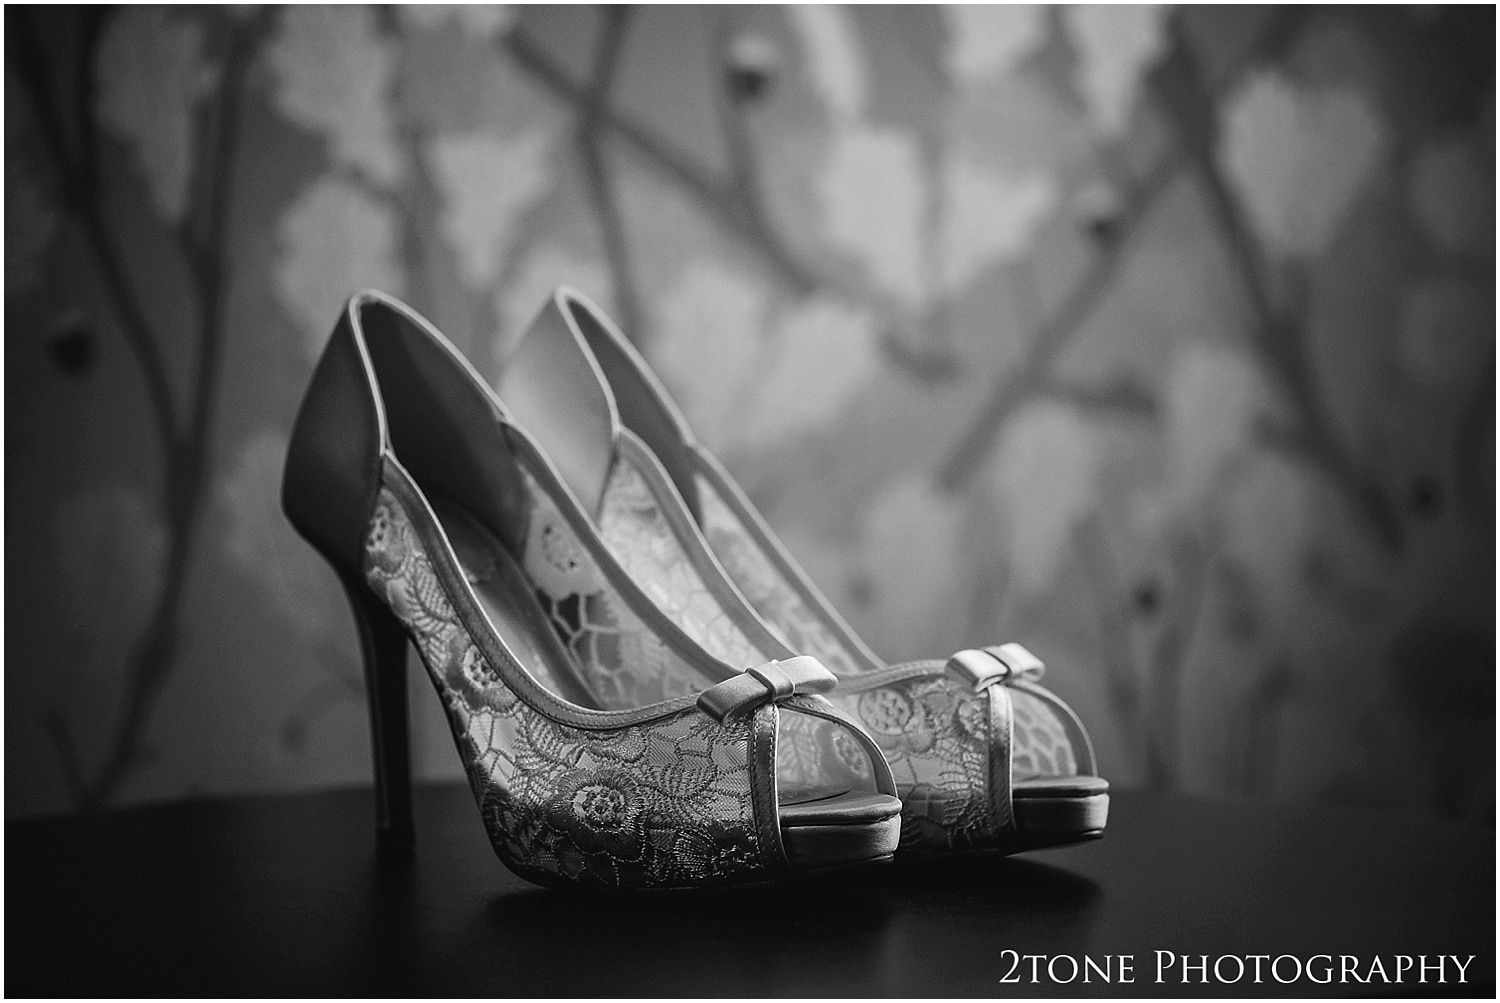 2tone Photography LTD